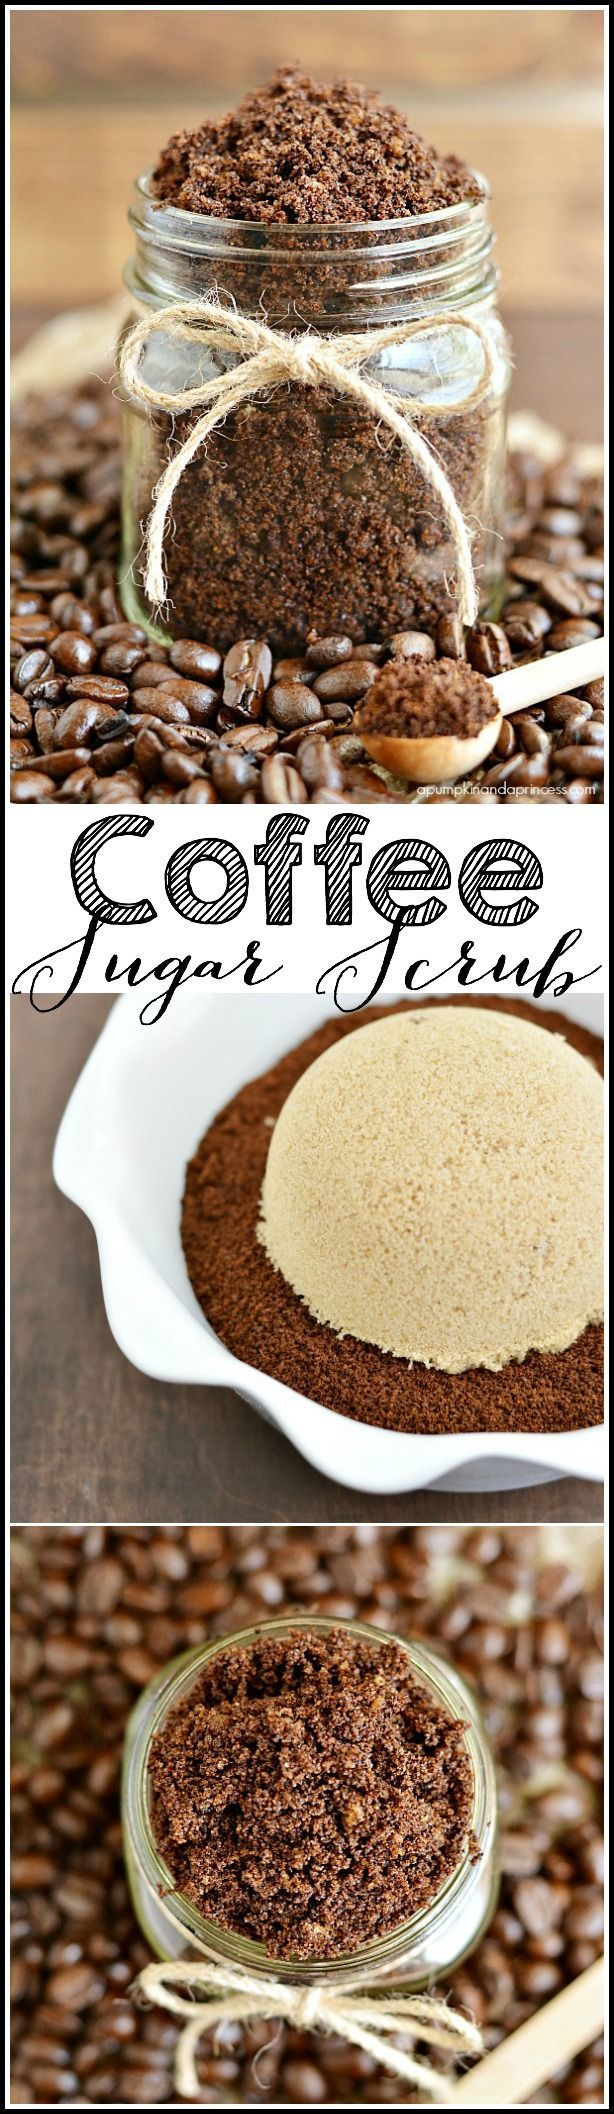 Homemade coffee scrub - fill mason jars with sugar scrub and you have a great under $5 gift idea for Christmas! More